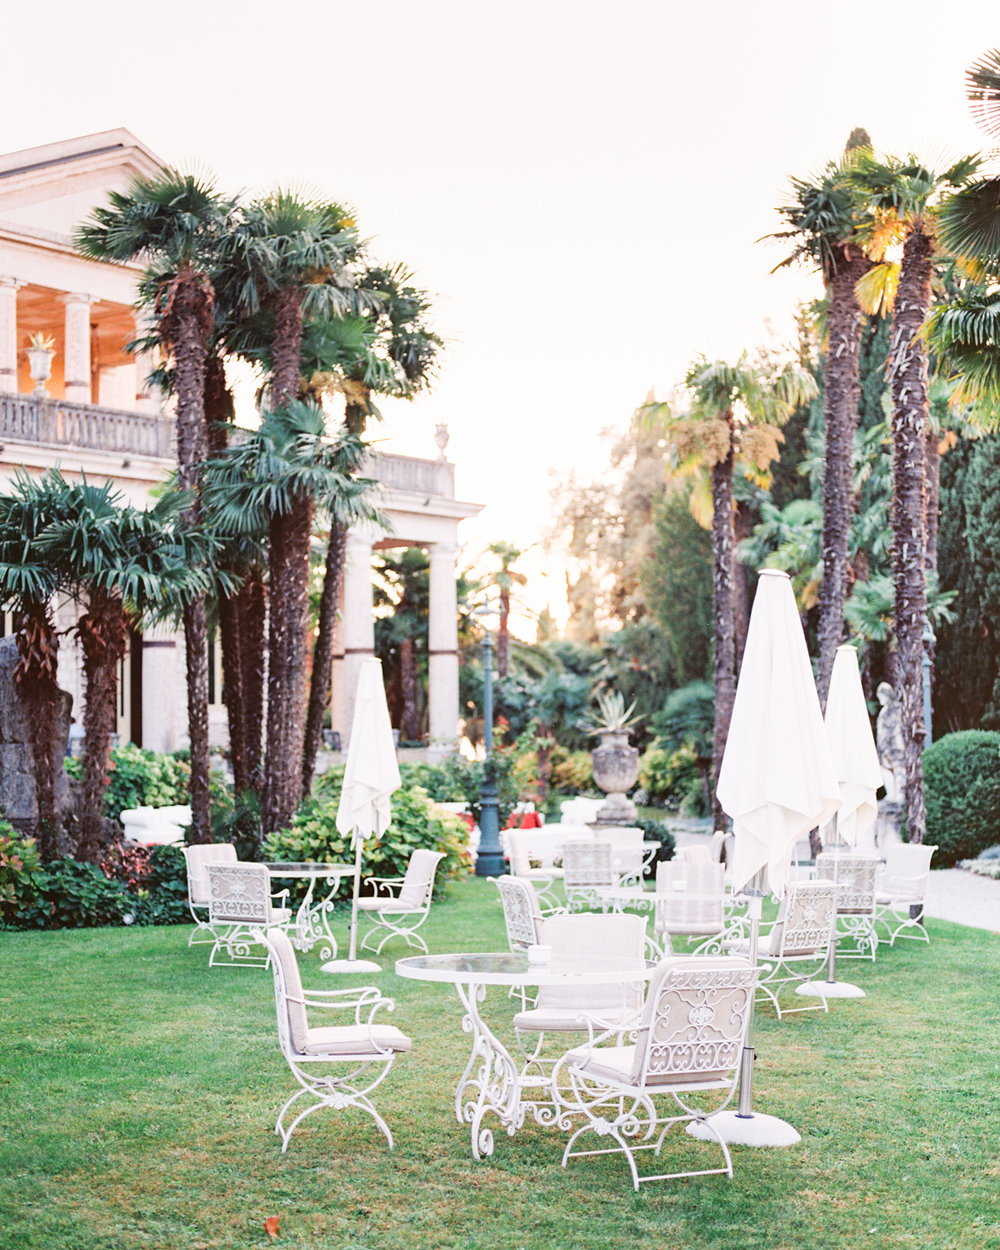 Palace_Villa_Cortine_Hotel_Italian_Wedding_Photographer_Sirmione_AKP-19.jpg